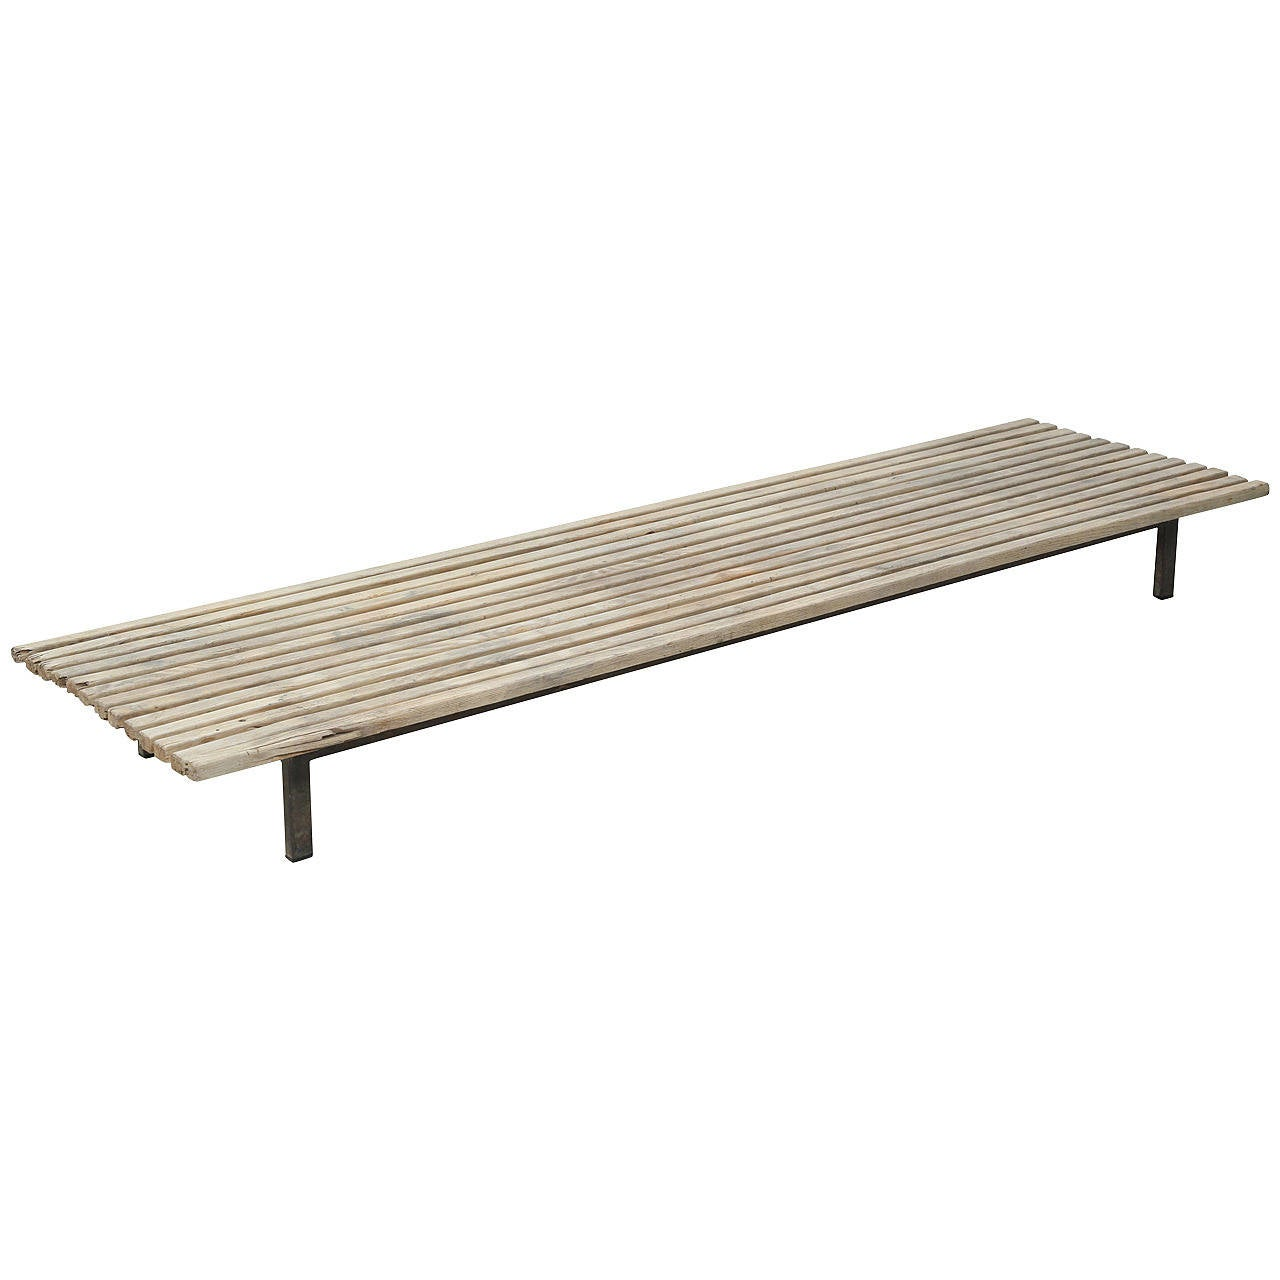 Extra Large Charlotte Perriand Slat Bench or Table 1Extra Large Charlotte Perriand Slat Bench or Table For Sale at 1stdibs. Outdoor Table Legs For Sale. Home Design Ideas